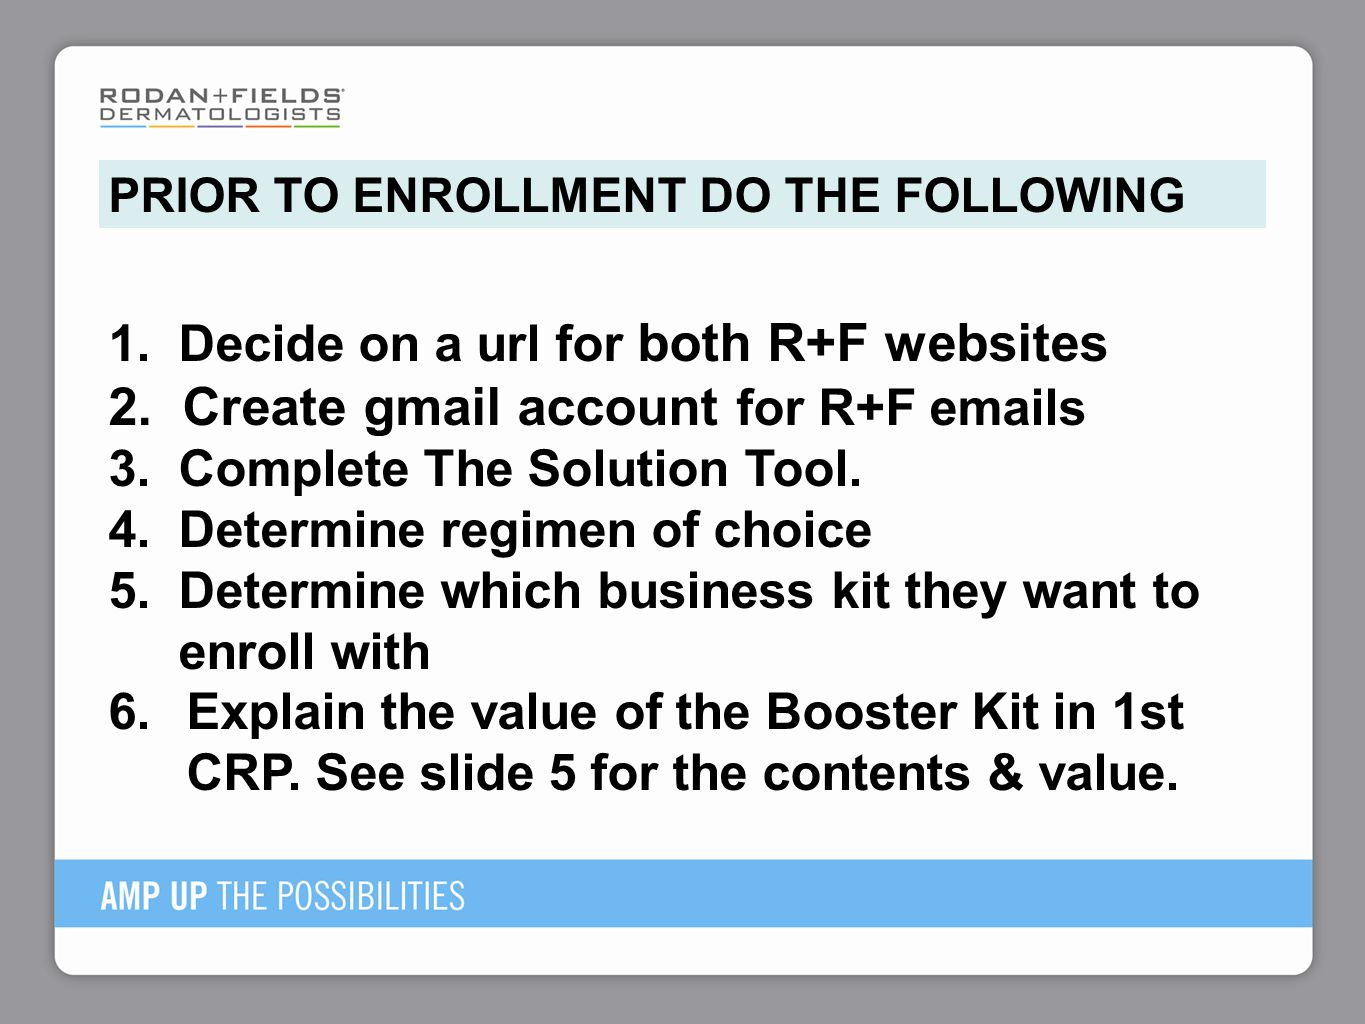 1. Decide on a url for both R+F websites 2. Create gmail account for R+F emails 3. Complete The Solution Tool. 4. Determine regimen of choice 5. Deter